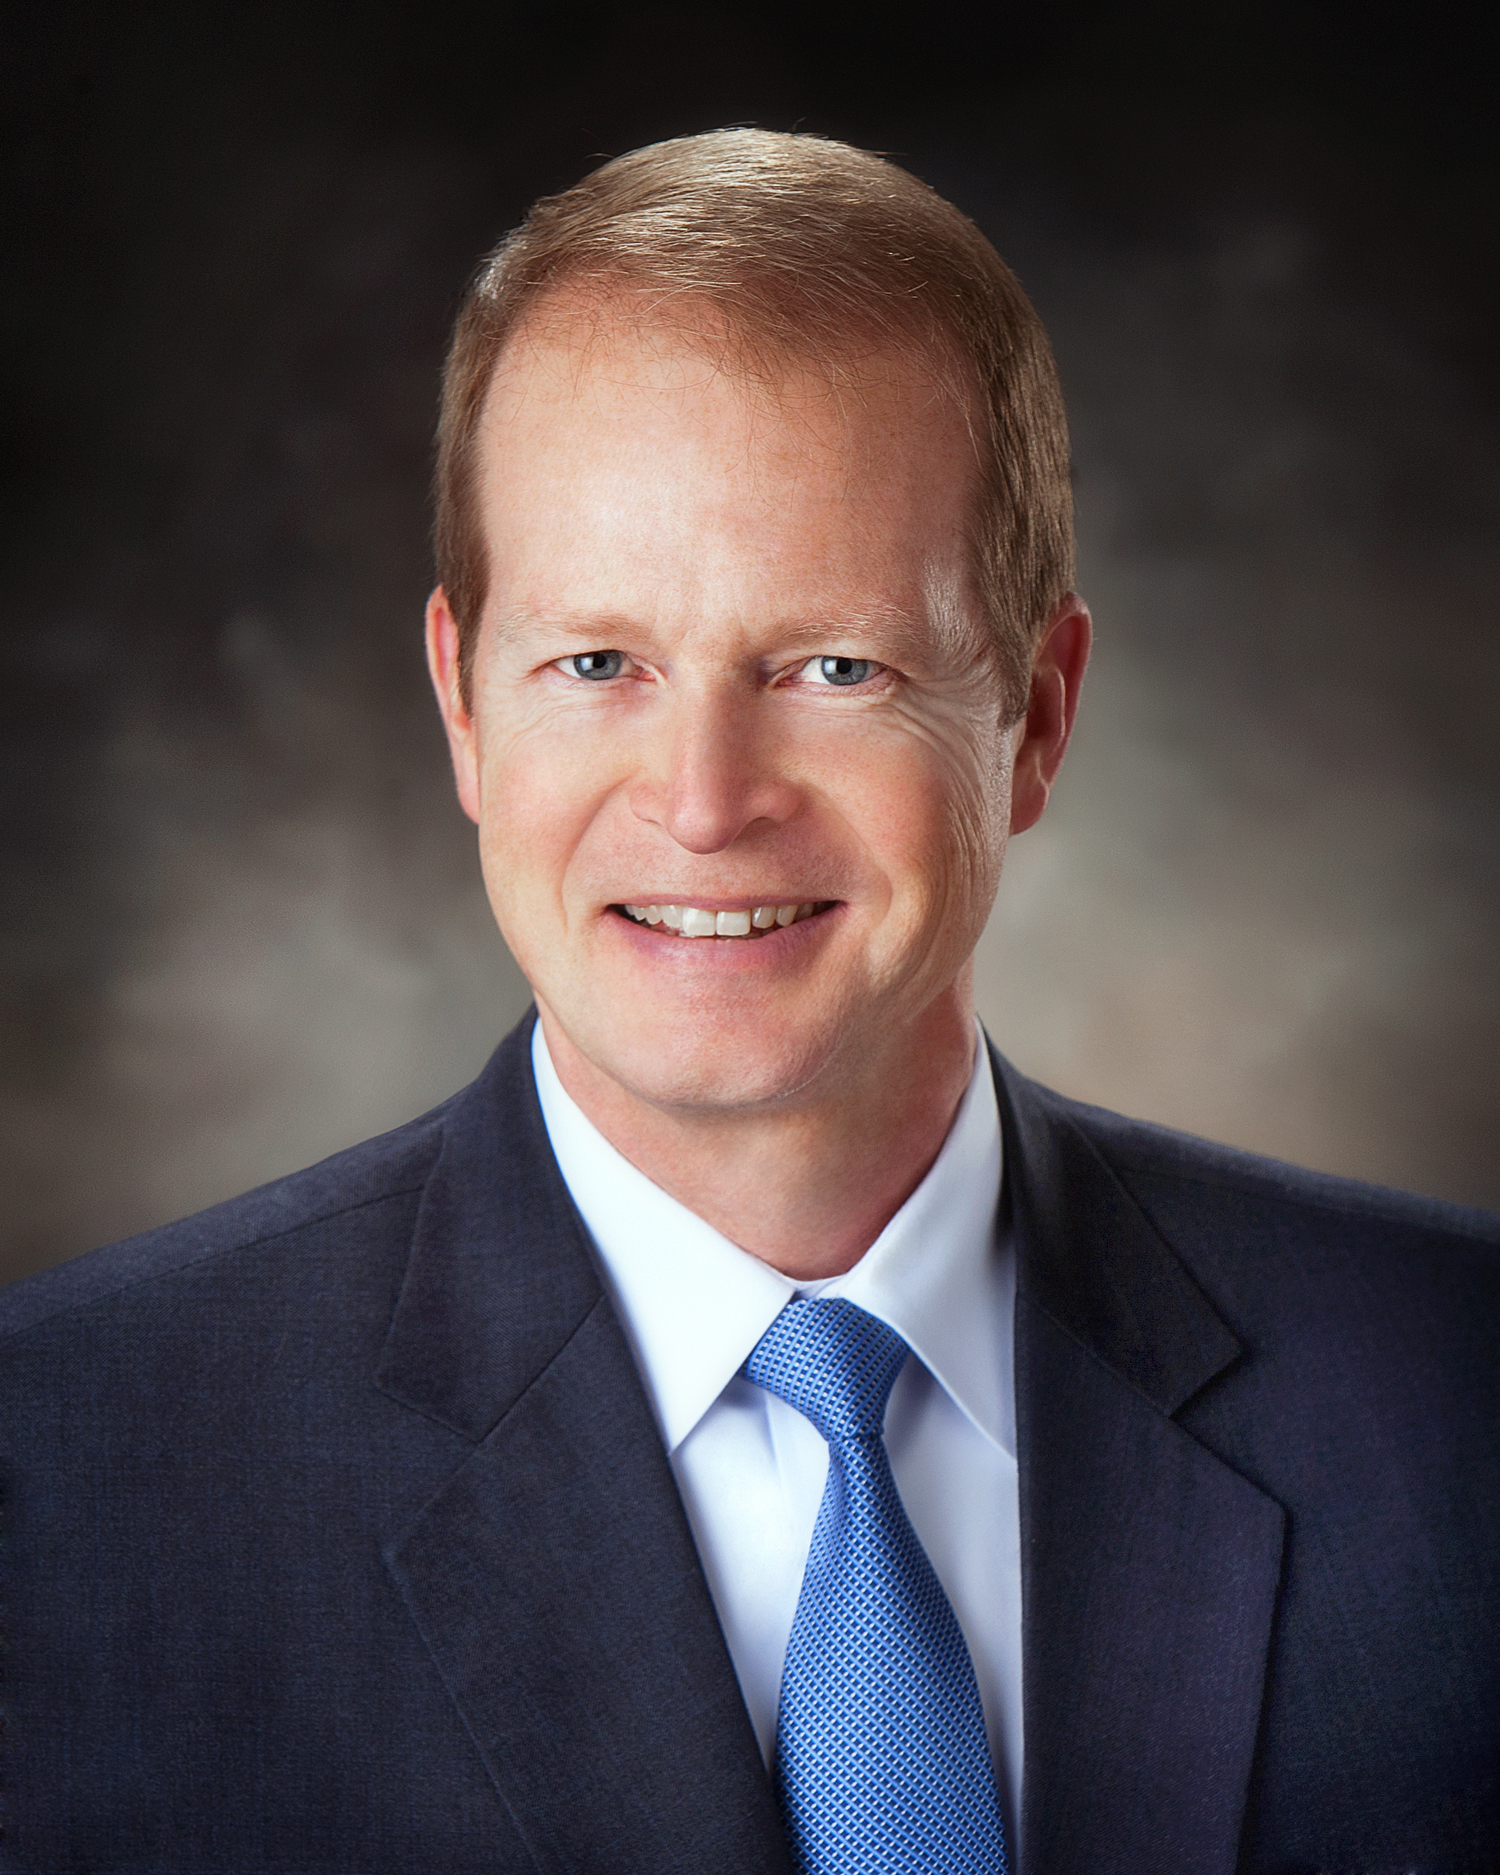 City Manager Moore kicks off Community Chat Jan 3